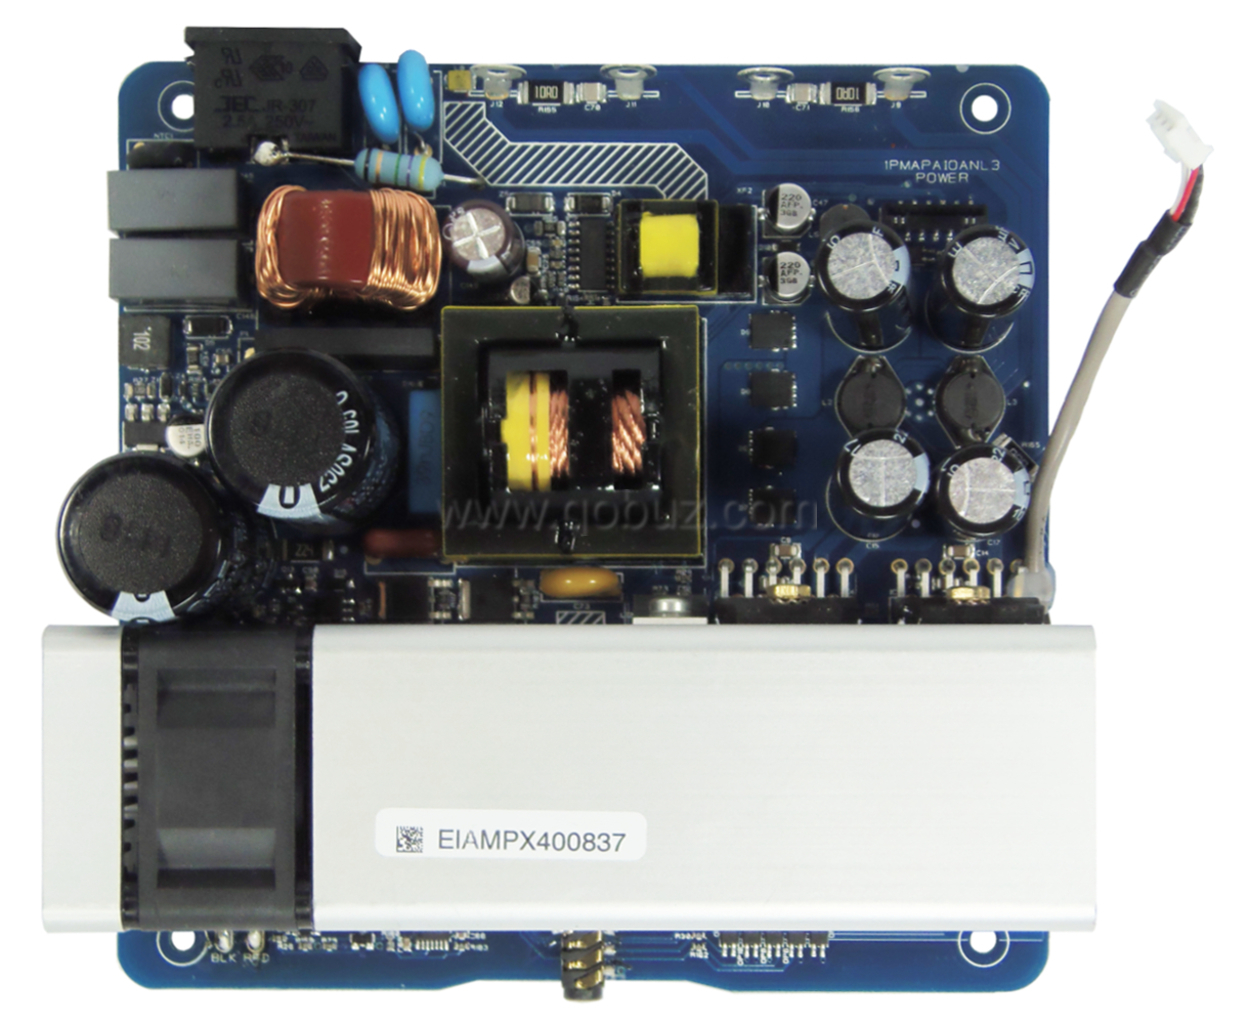 Micromega Myamp Qobuzism For This Compact And Charming Amplifier Lm3886 High Performance Audio Power You Can See A Switched Mode Supply Two Filtering Condensers Of 680f 200v Which Smooth The Rectified Voltage Before Cutting It